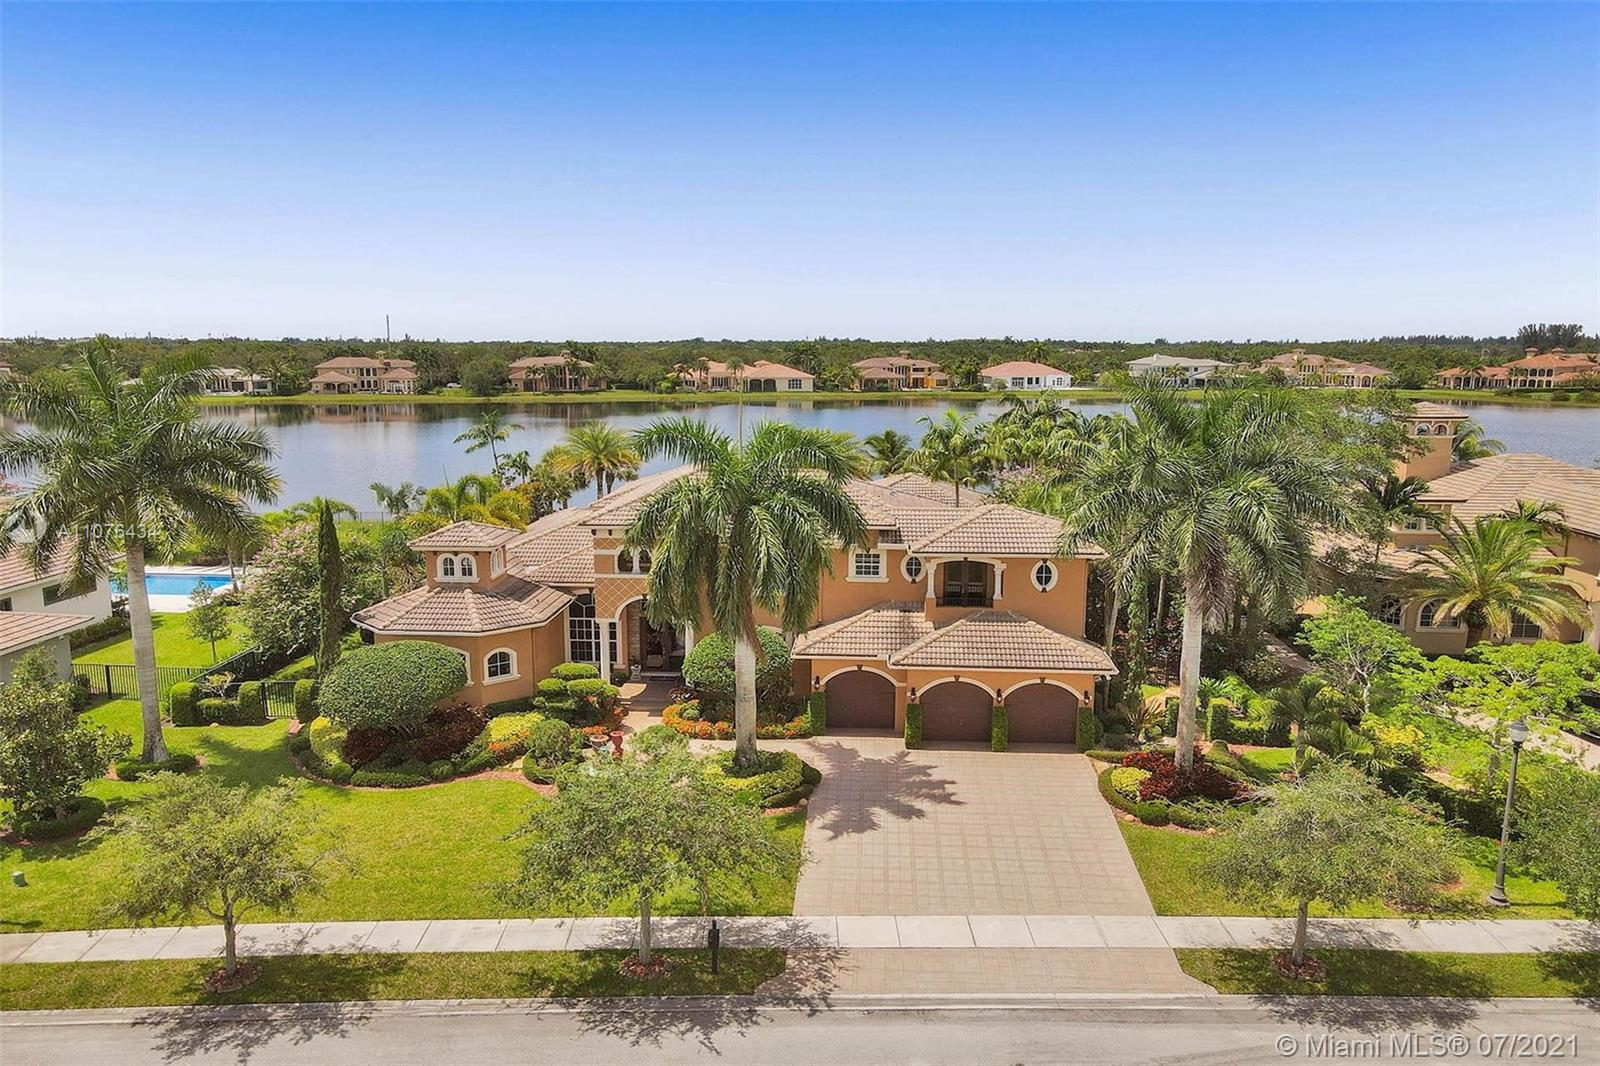 Elegant custom-built Vanderbilt model tucked in the 24 hr guard-gated community of Windmill Reserve at Weston.5,442 square feet under air. Sitting on over a 1/2 acre of lushly landscaped serenity with deep and wide lake view, scenic pathways, and fully fenced with sparkling infinity-edge pool and spa. Enjoy immaculately maintained and spacious 5 bedrooms+office+game room, 6 full baths & 3 car garage. Owner's suite on the first level with sitting room. Luxurious marble owner's bath. Marble and wood flooring throughout living areas. Grand staircase to the second level. Summer kitchen with large patio overlooking the peaceful and beautiful green and garden areas.